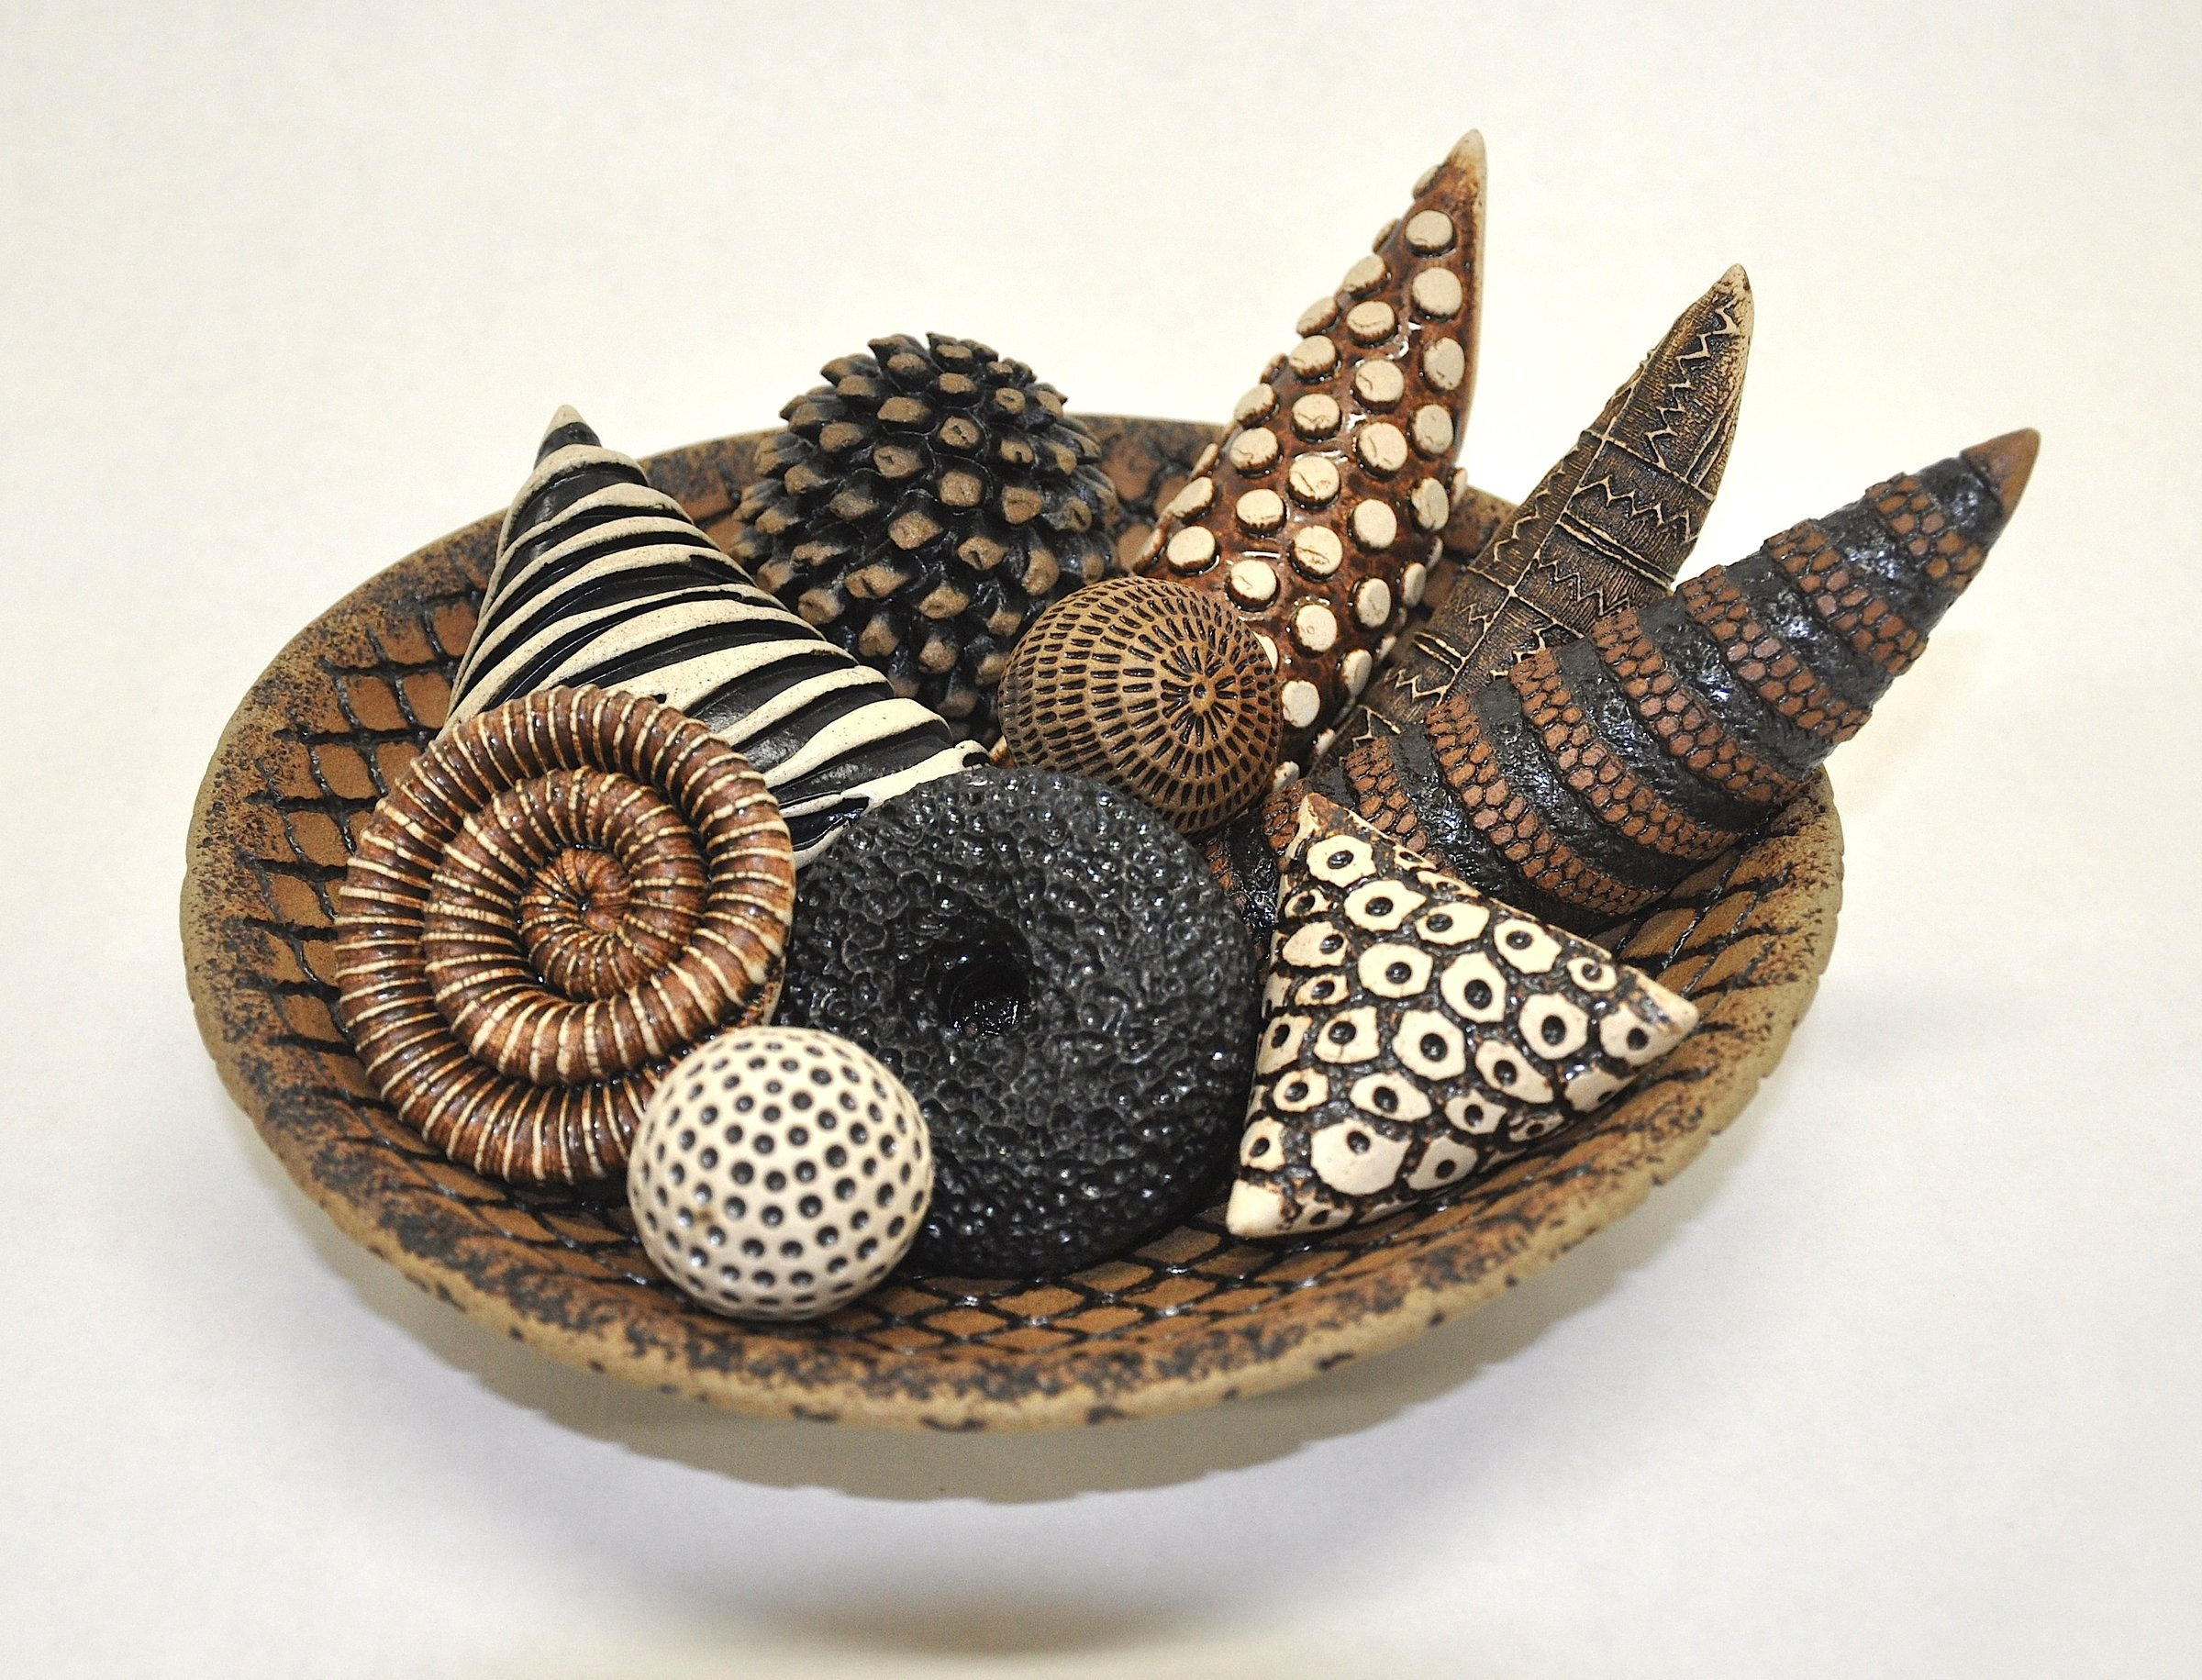 Bowls and Rattles II by Kelly Jean Ohl (Ceramic Sculpture ...